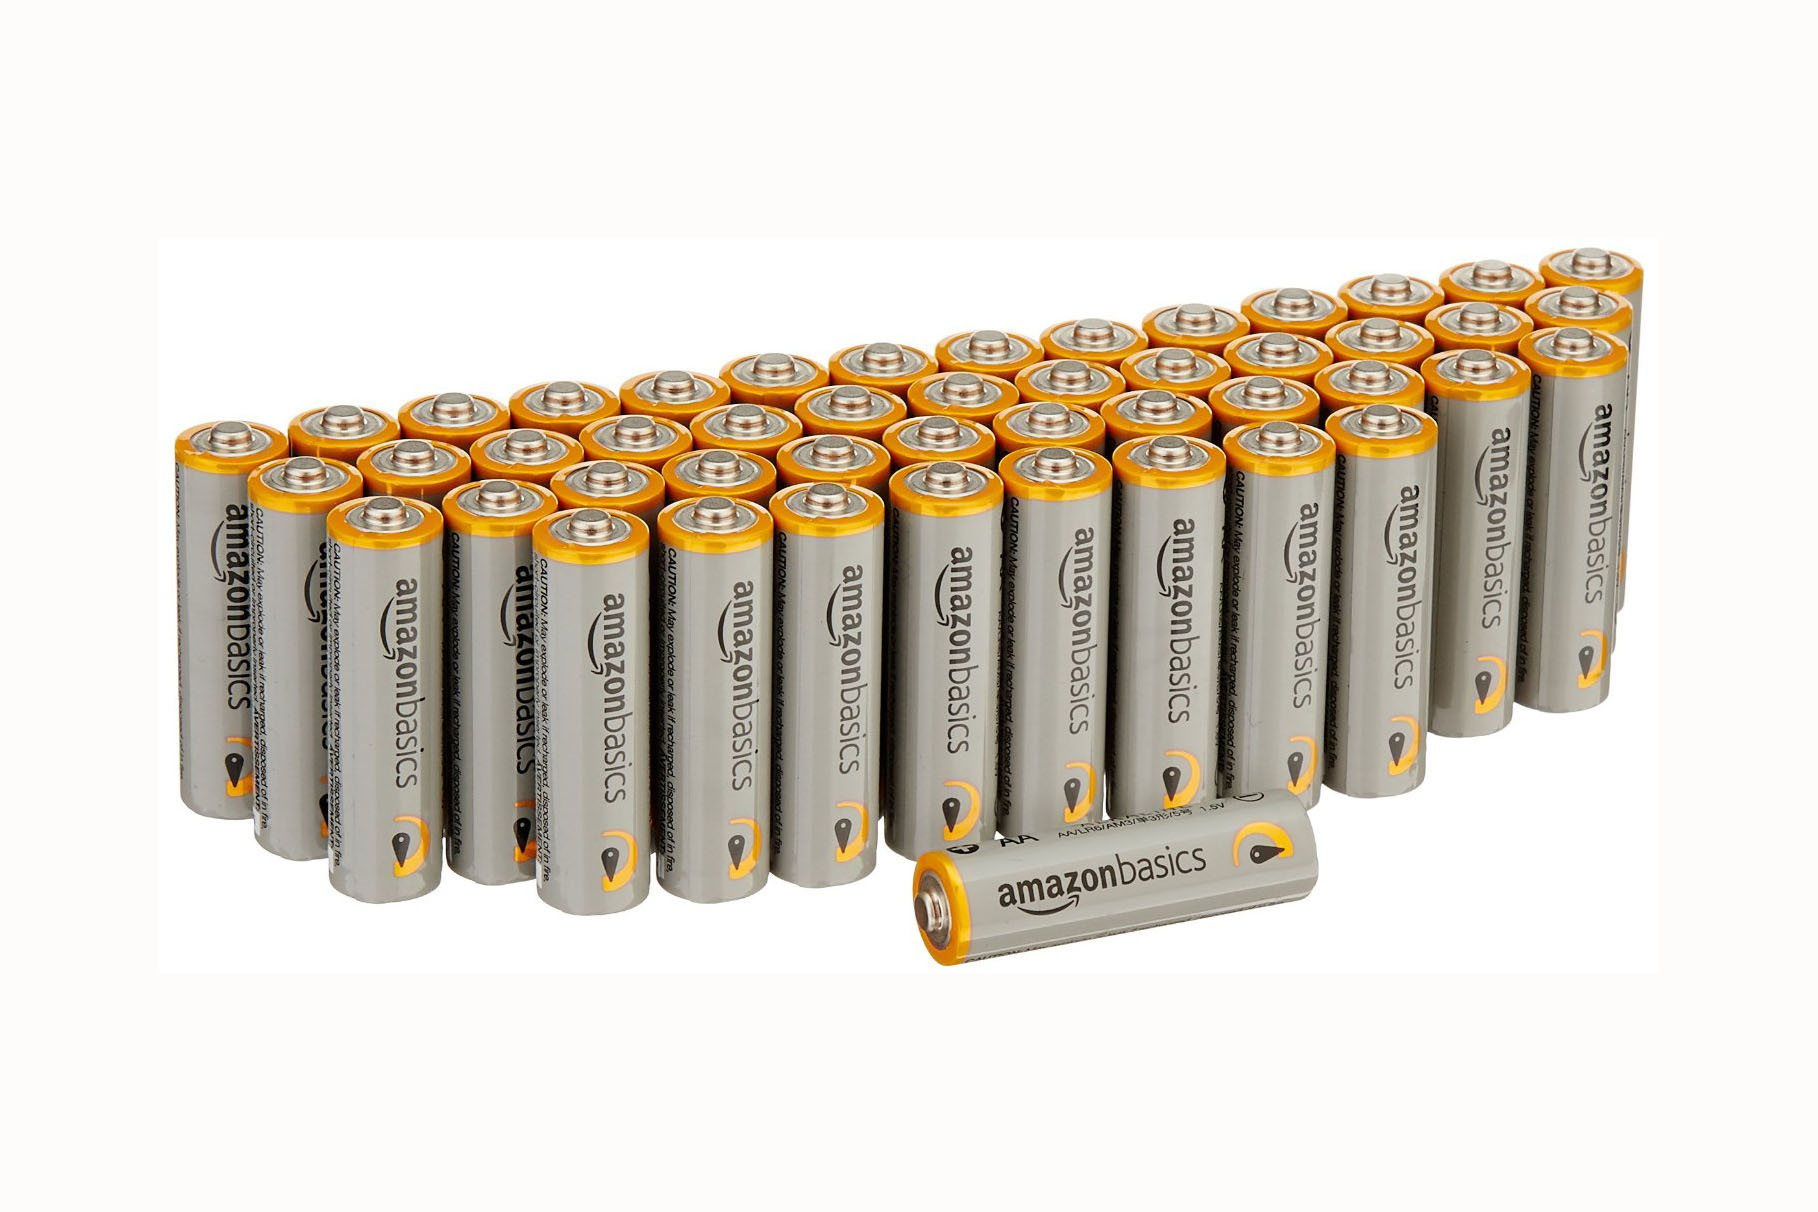 48 - AA Batteries - 4.5 stars - $13 (Prime)